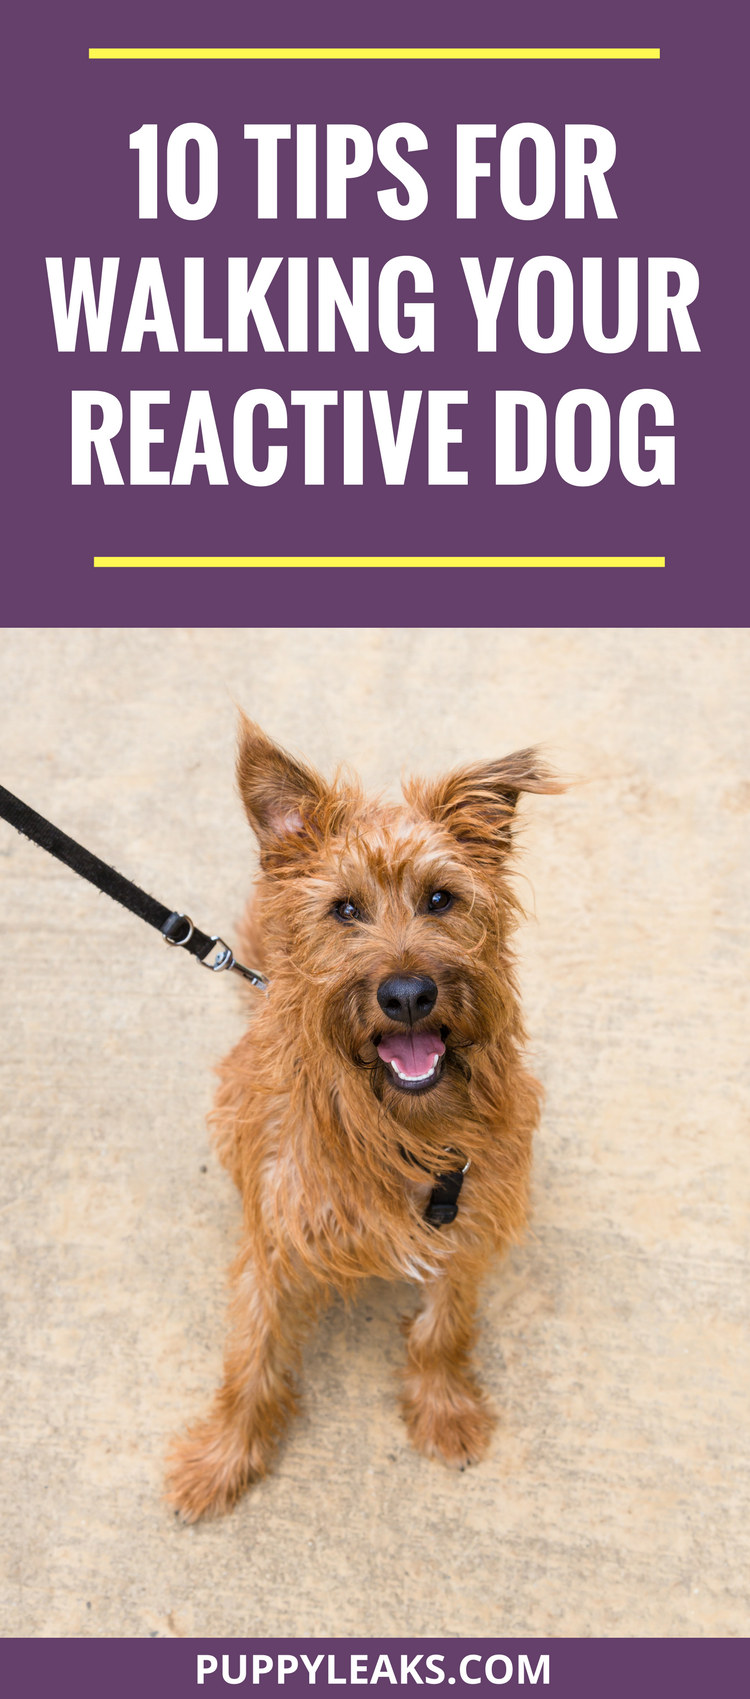 Is your dog reactive out on walks? Here's 10 tips to help you walk your reactive dog.